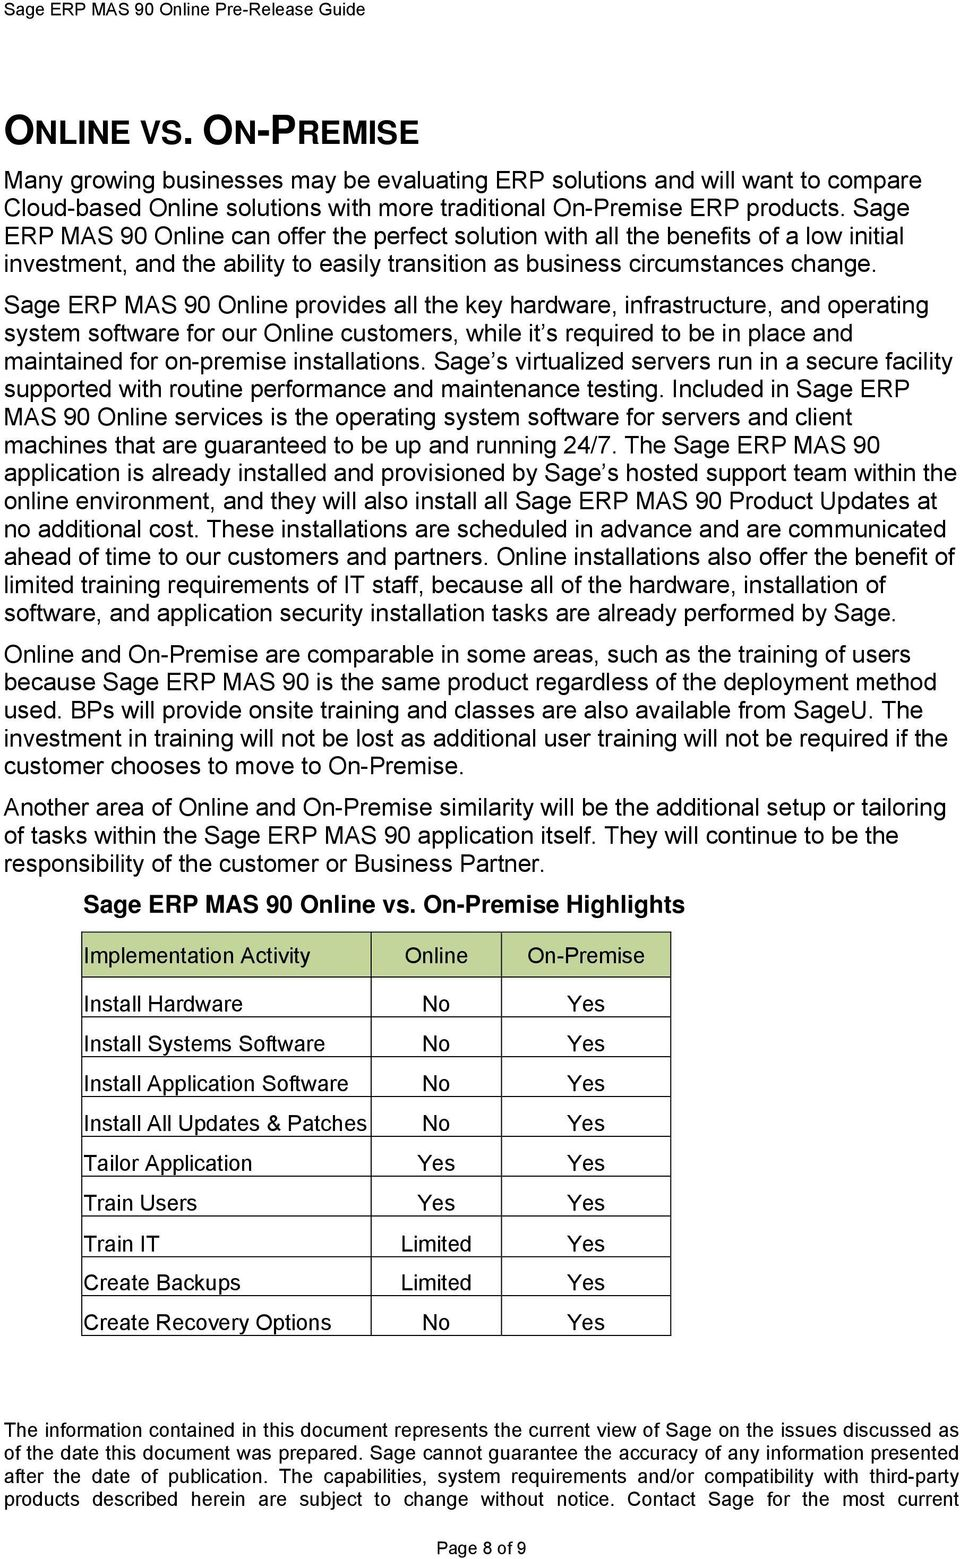 Sage ERP MAS 90 Online provides all the key hardware, infrastructure, and operating system software for our Online customers, while it s required to be in place and maintained for on-premise